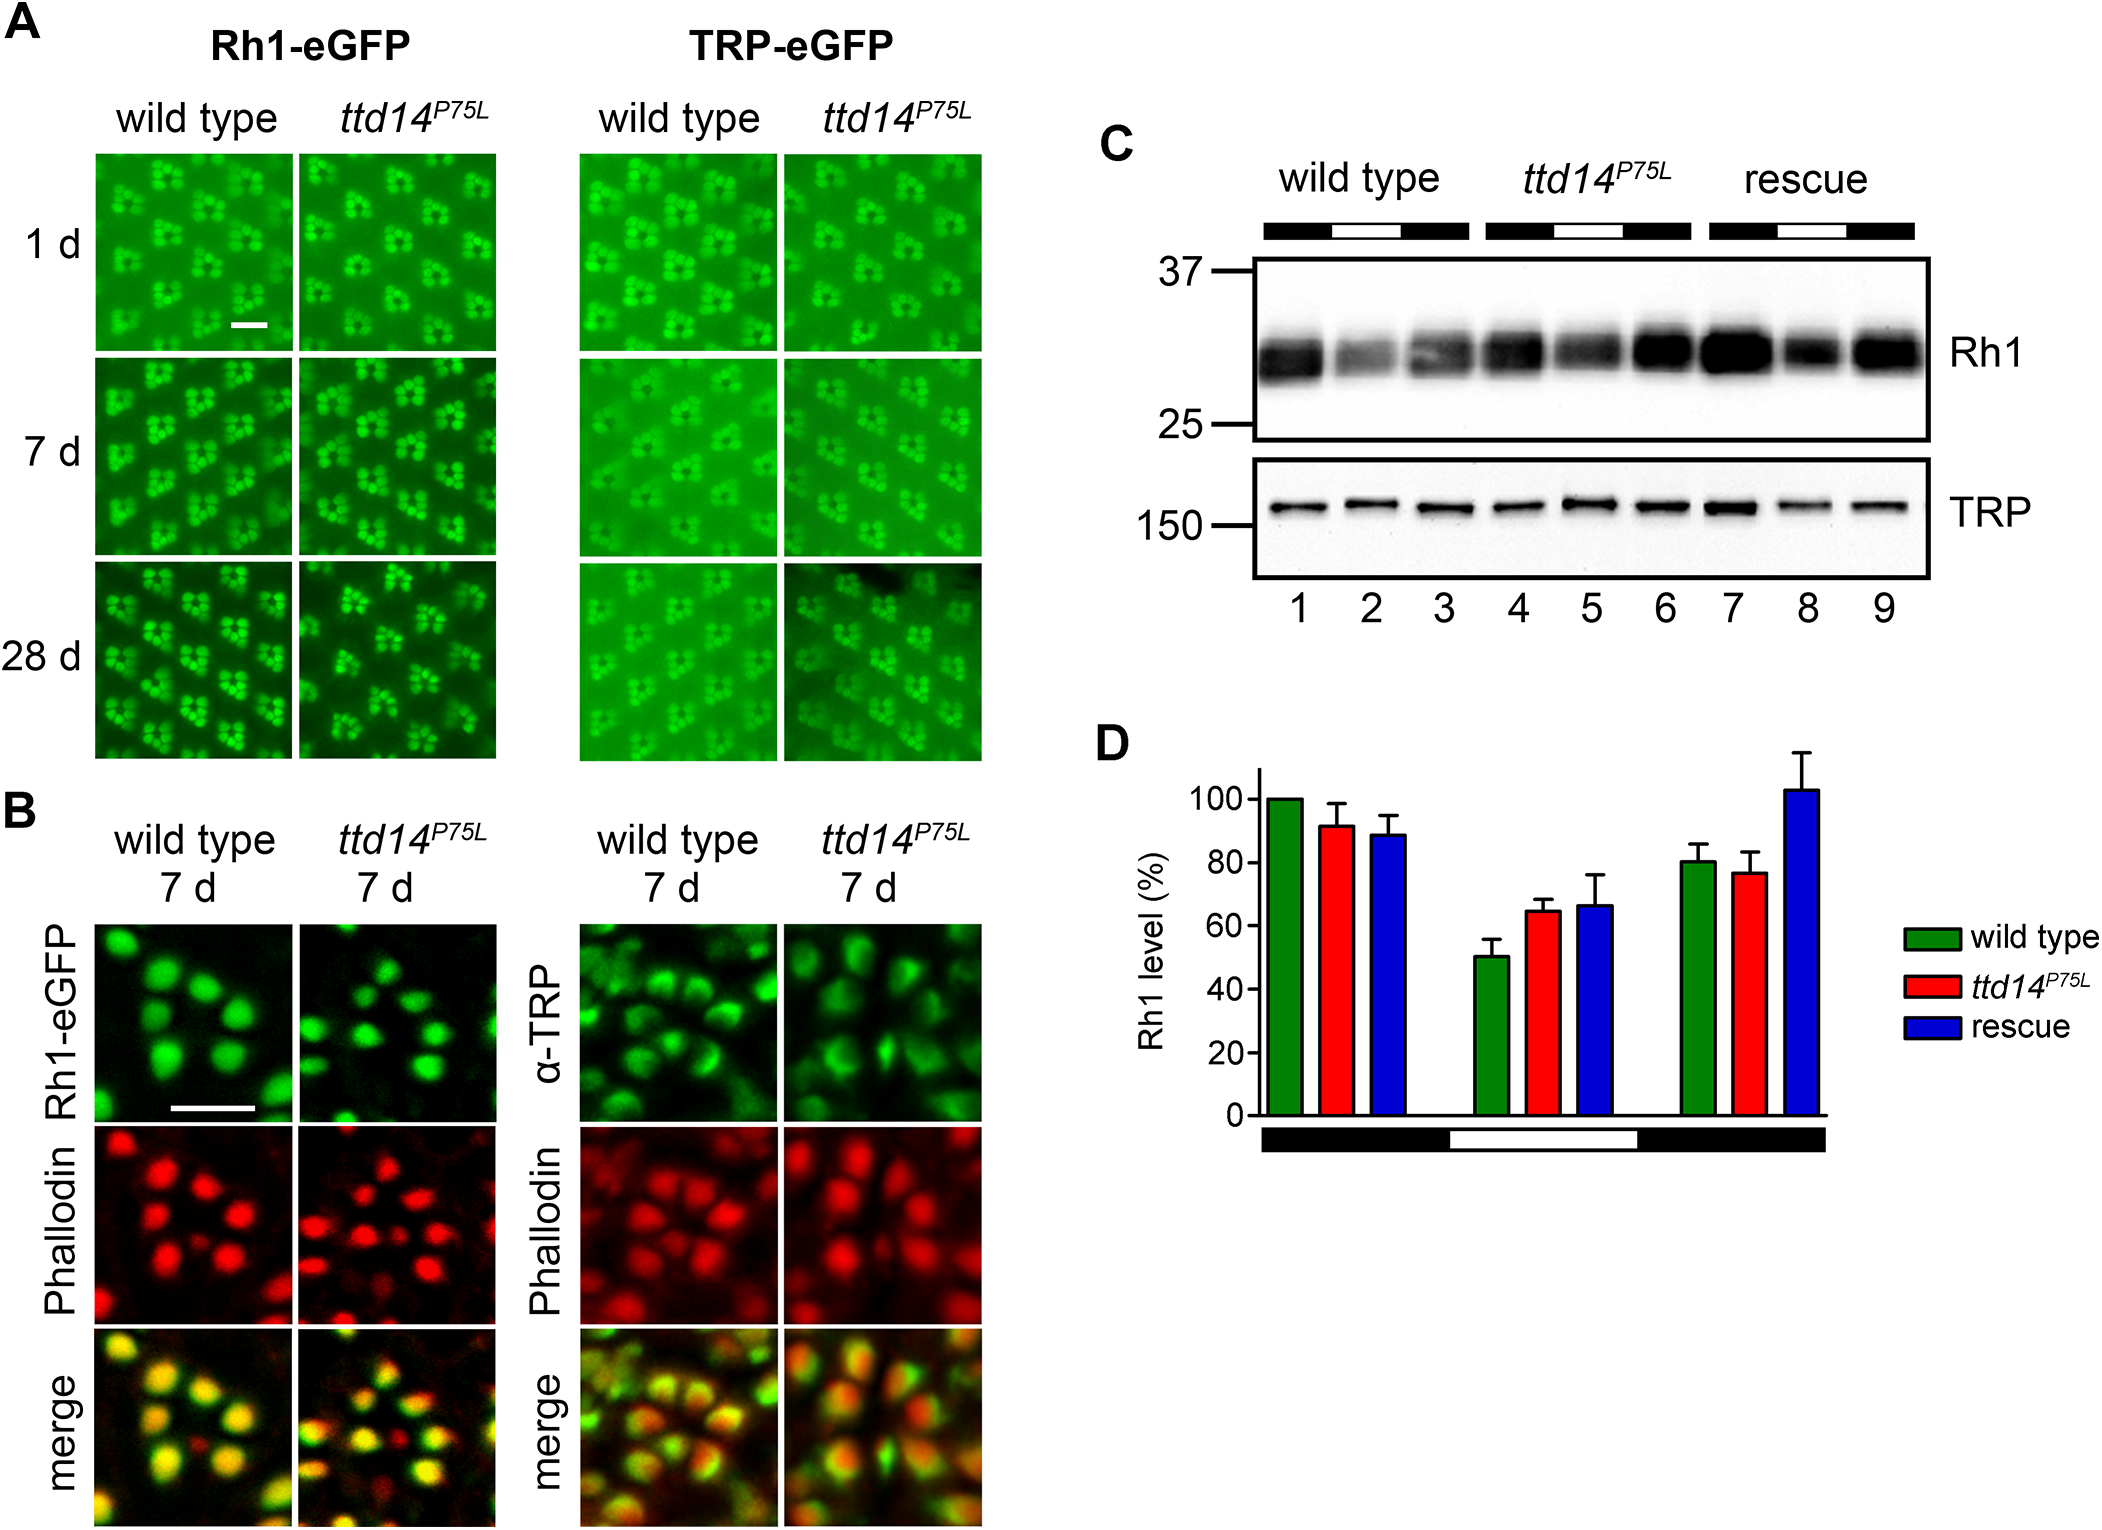 Rhabdomeral localization of Rh1 and TRP is not affected in the <i>ttd14</i><sup><i>P75L</i></sup> mutant.